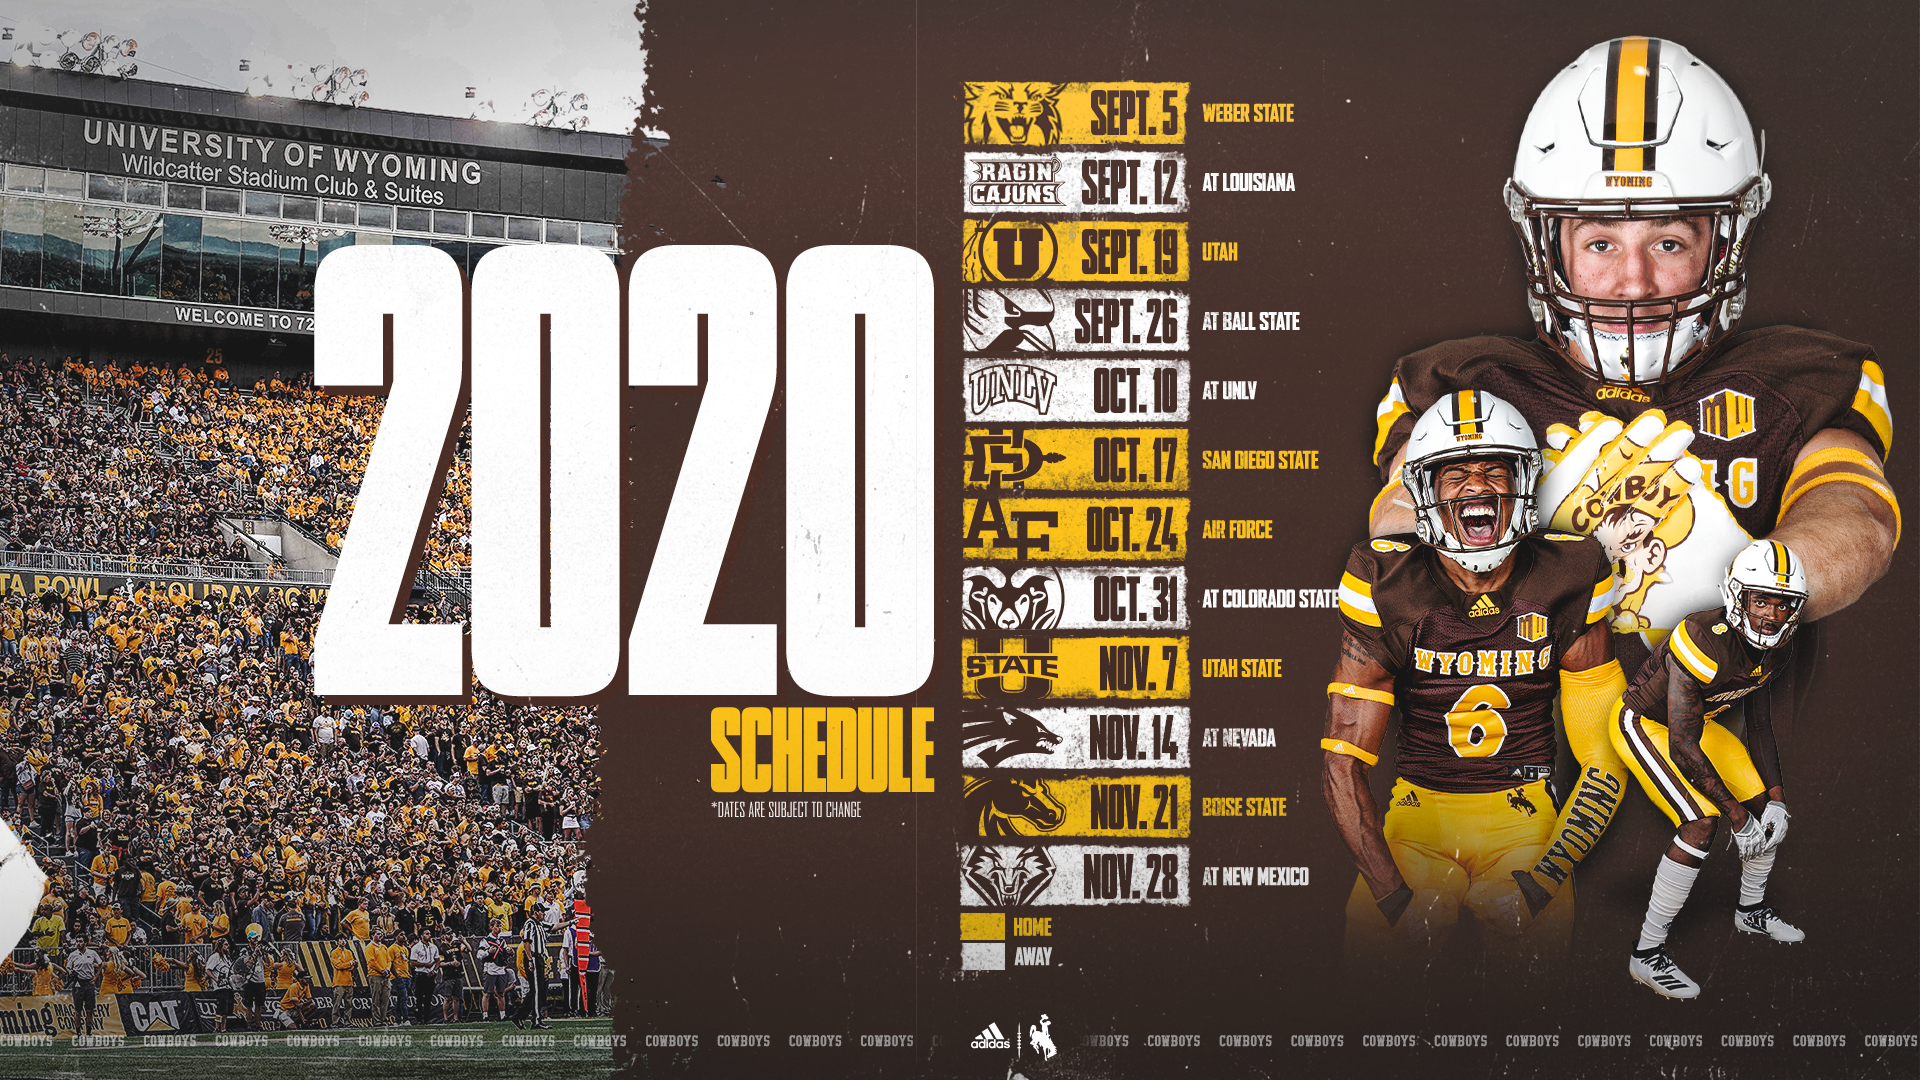 Wyoming Football To Host One Of The Best Home Schedules In With Wyoming University Calendar